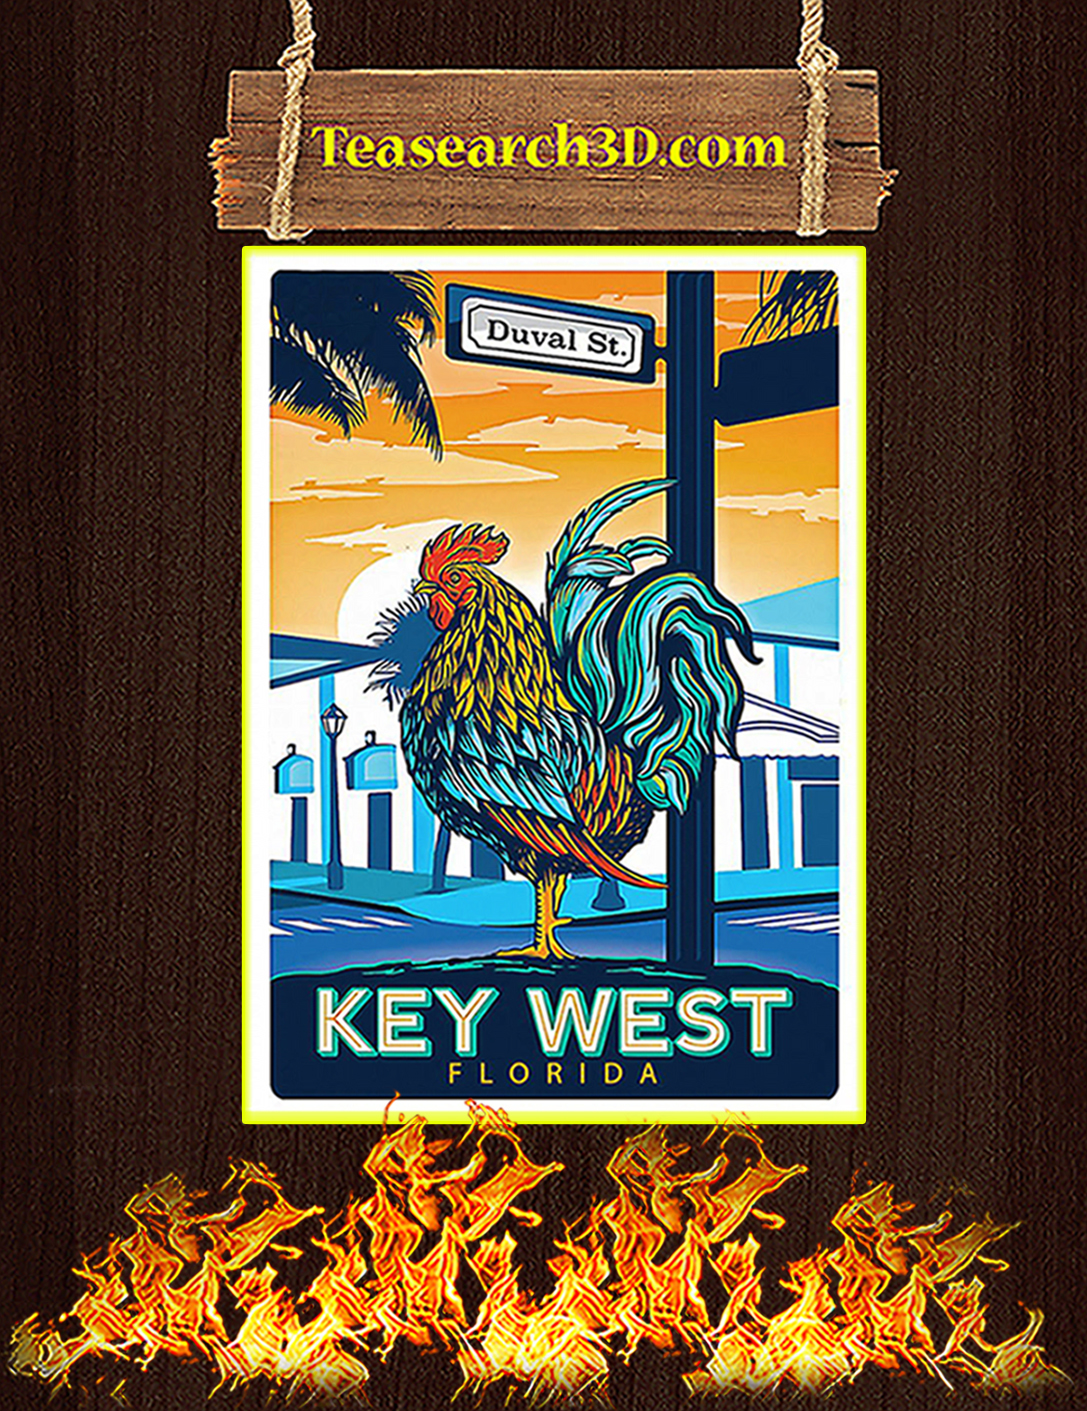 Chicken key west florida duval street poster A2